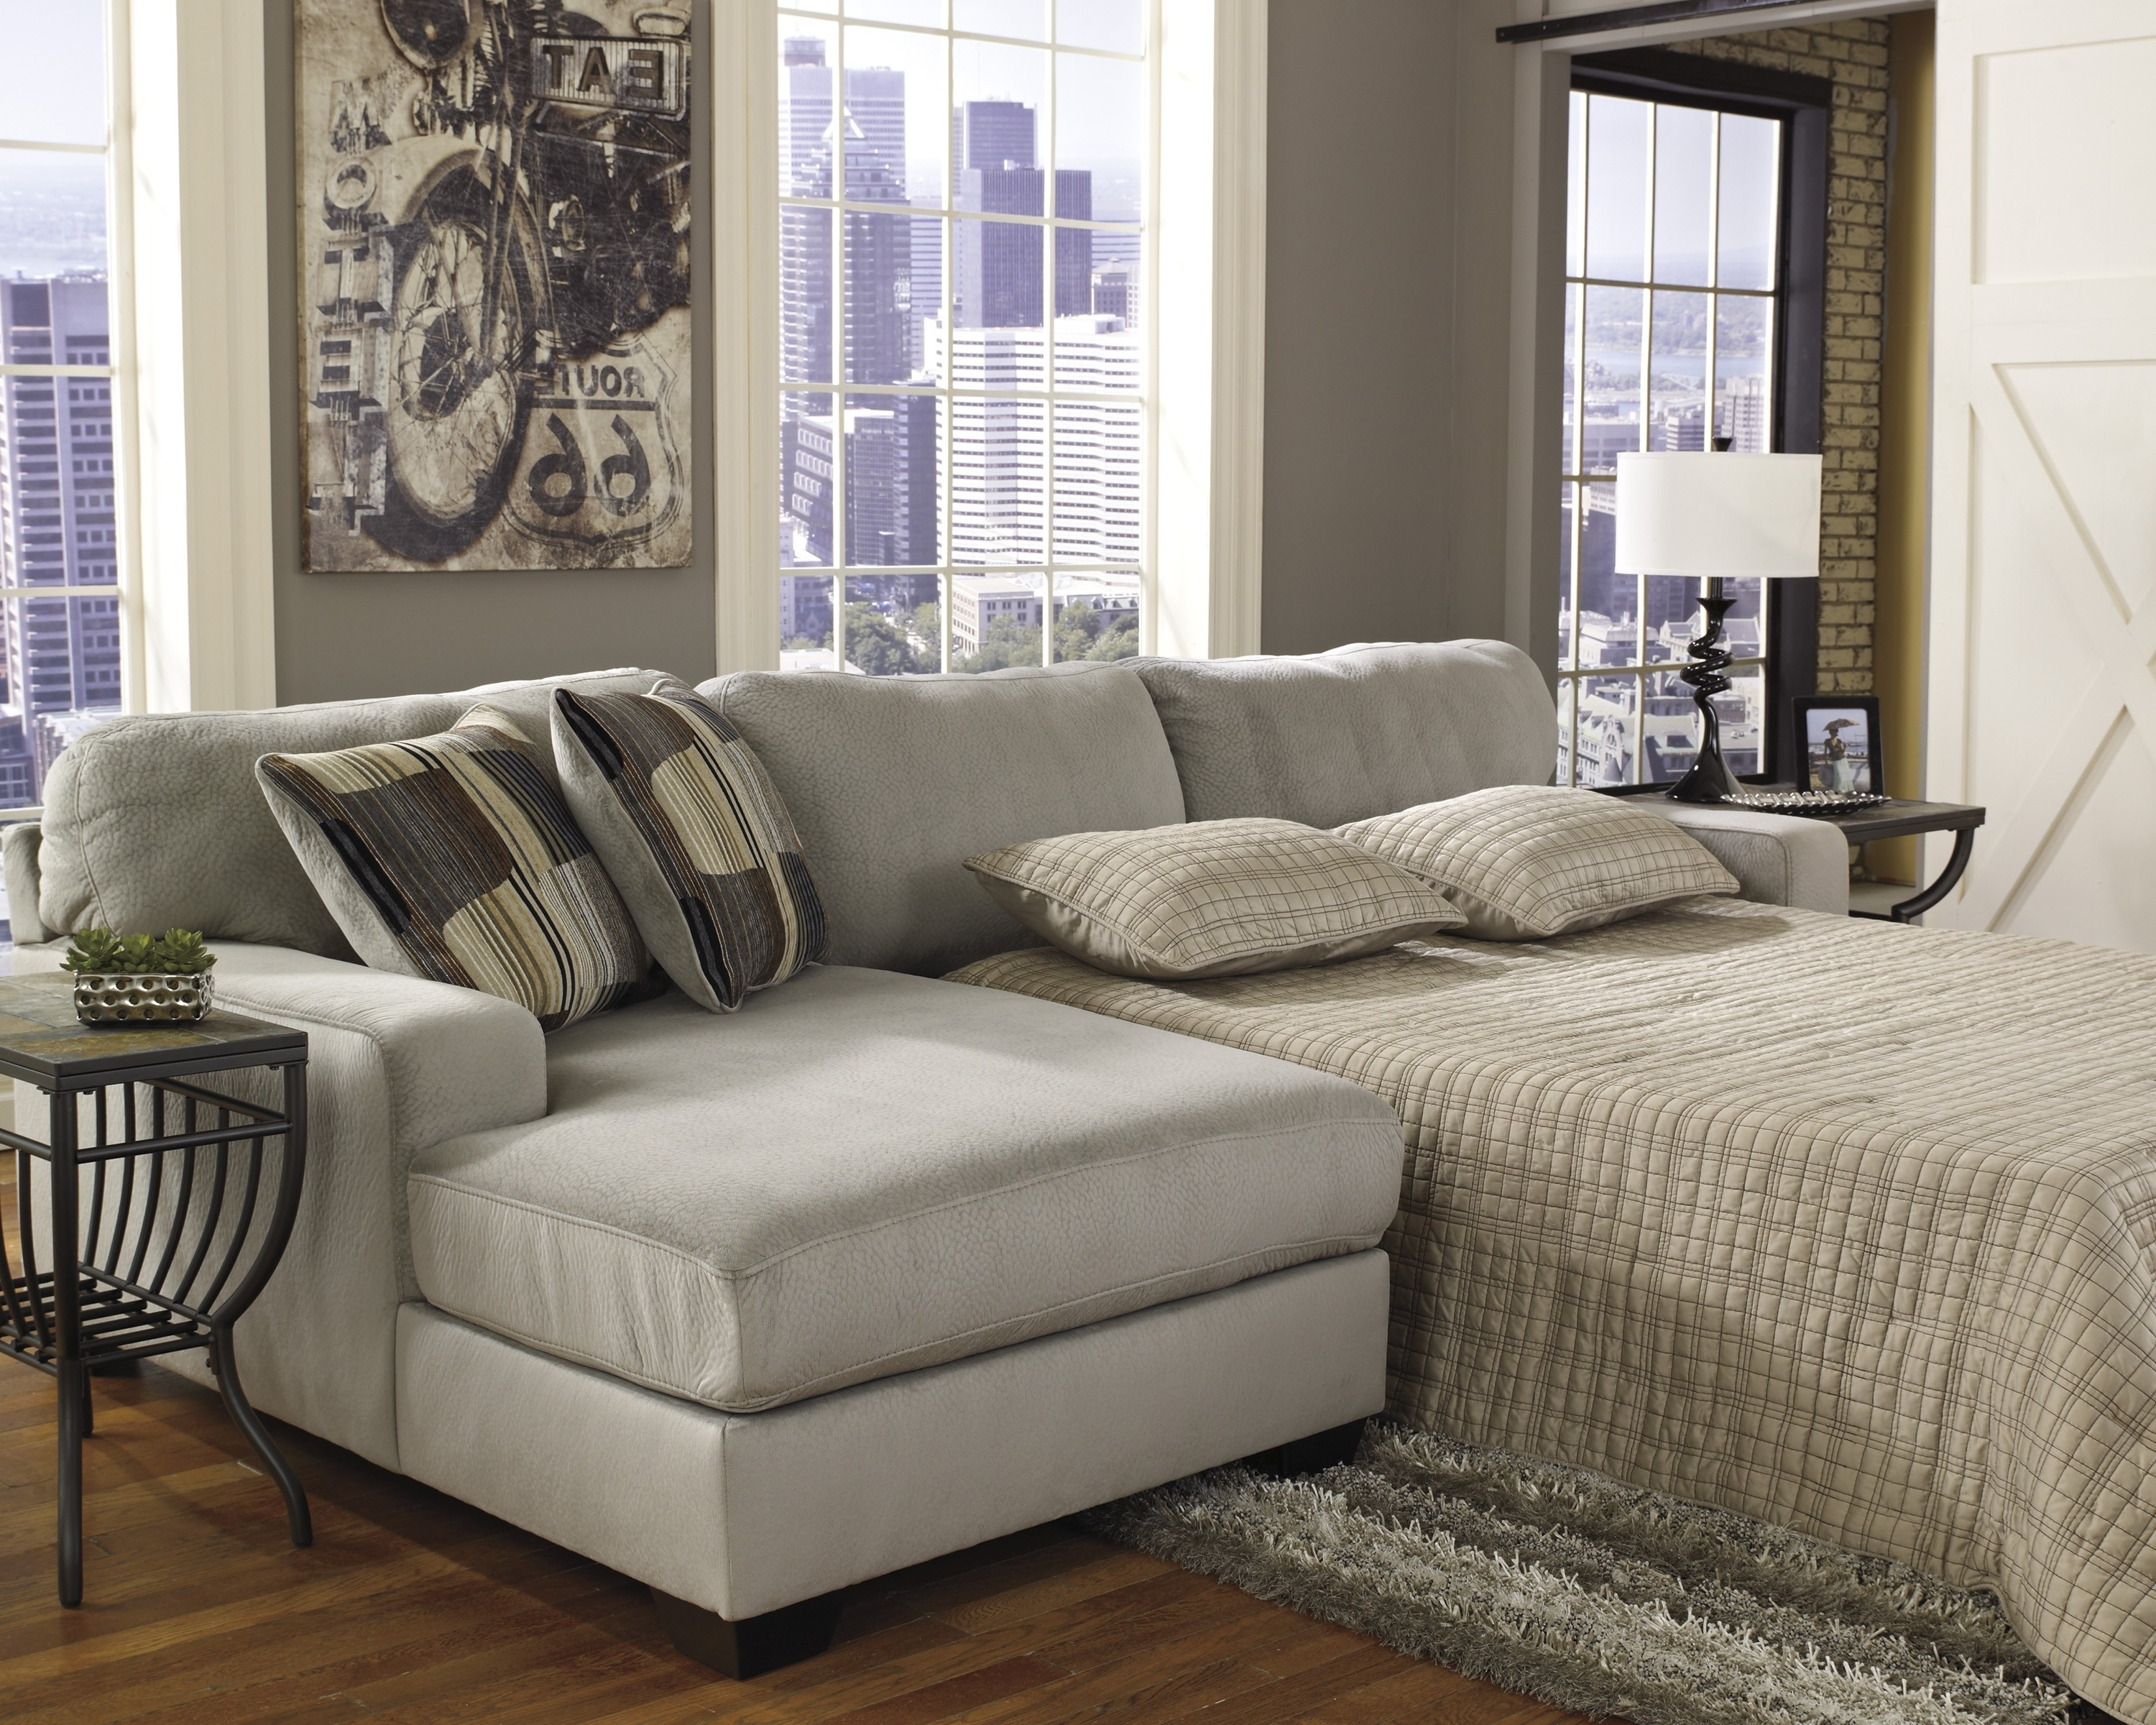 Preferred Sectional Sofa With Chaise And Sleeper – Cleanupflorida Inside Sectional Sofas At Calgary (View 14 of 20)